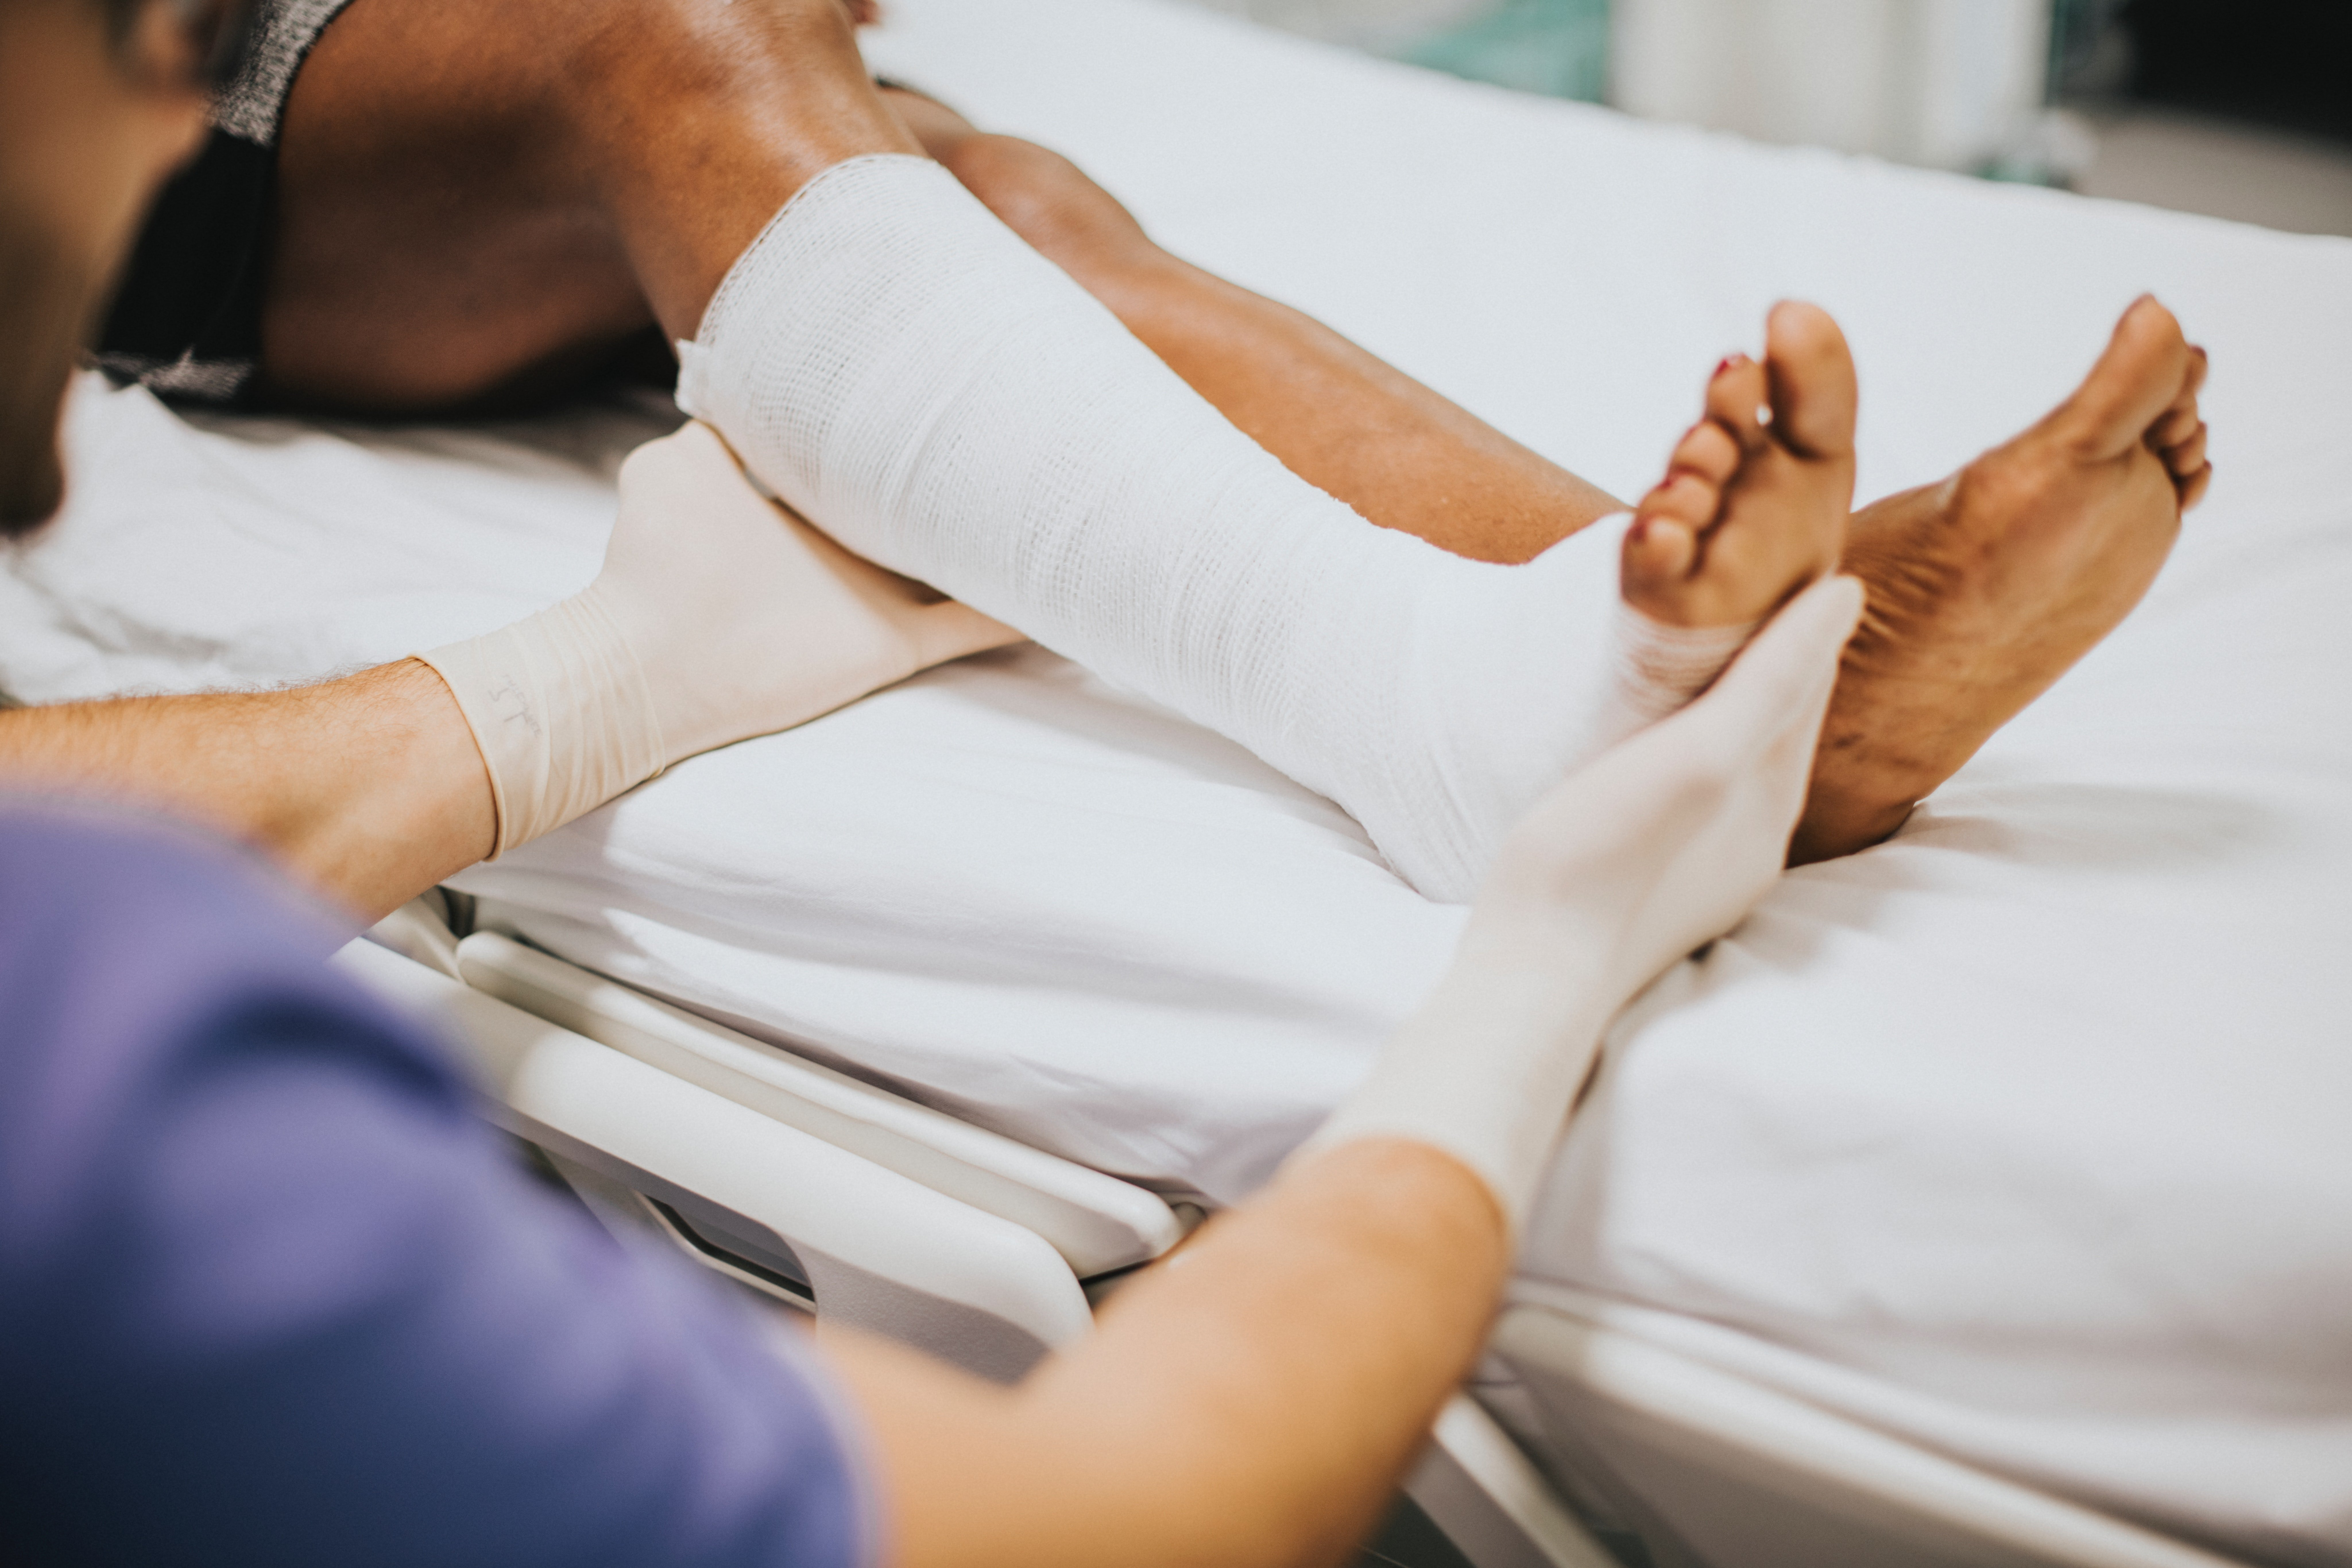 A nurse caring for a man in the hospital. | Source: Pexels